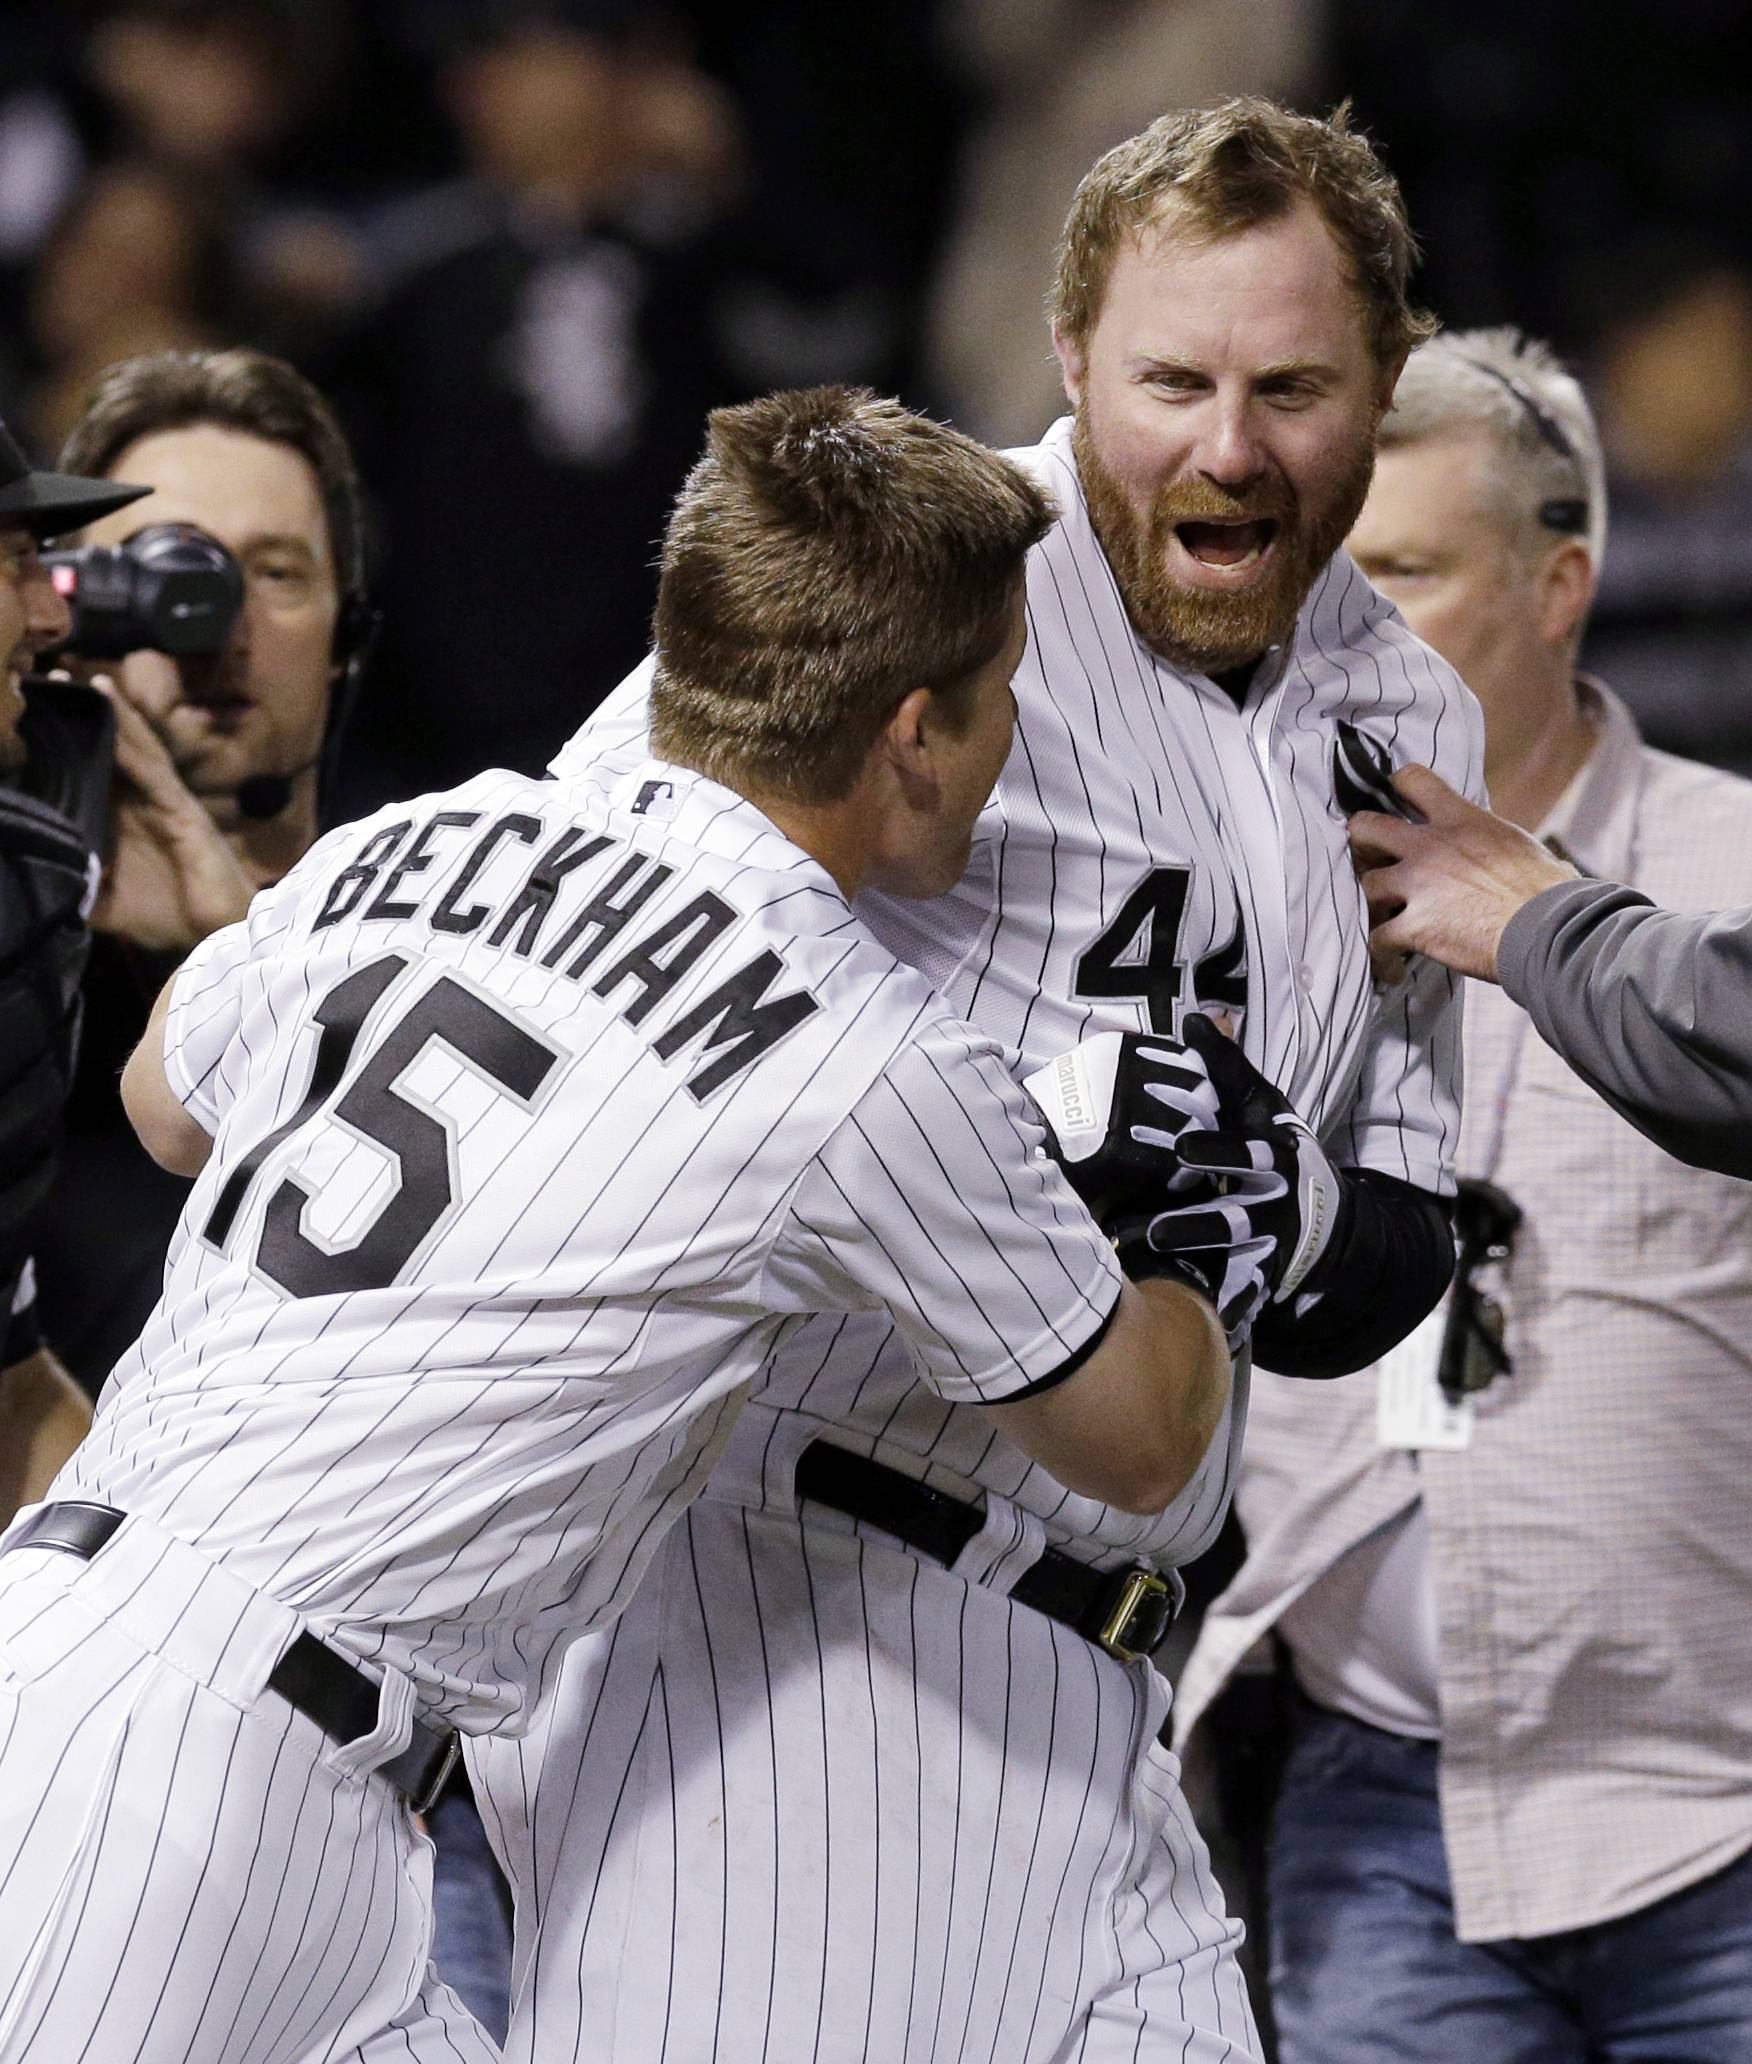 Adam Dunn, right, celebrates with Gordon Beckham after hitting the game-winning two-run home run against the New York Yankees during the ninth inning of a baseball game in Chicago on Friday, May 23, 2014. The White Sox won 6-5.